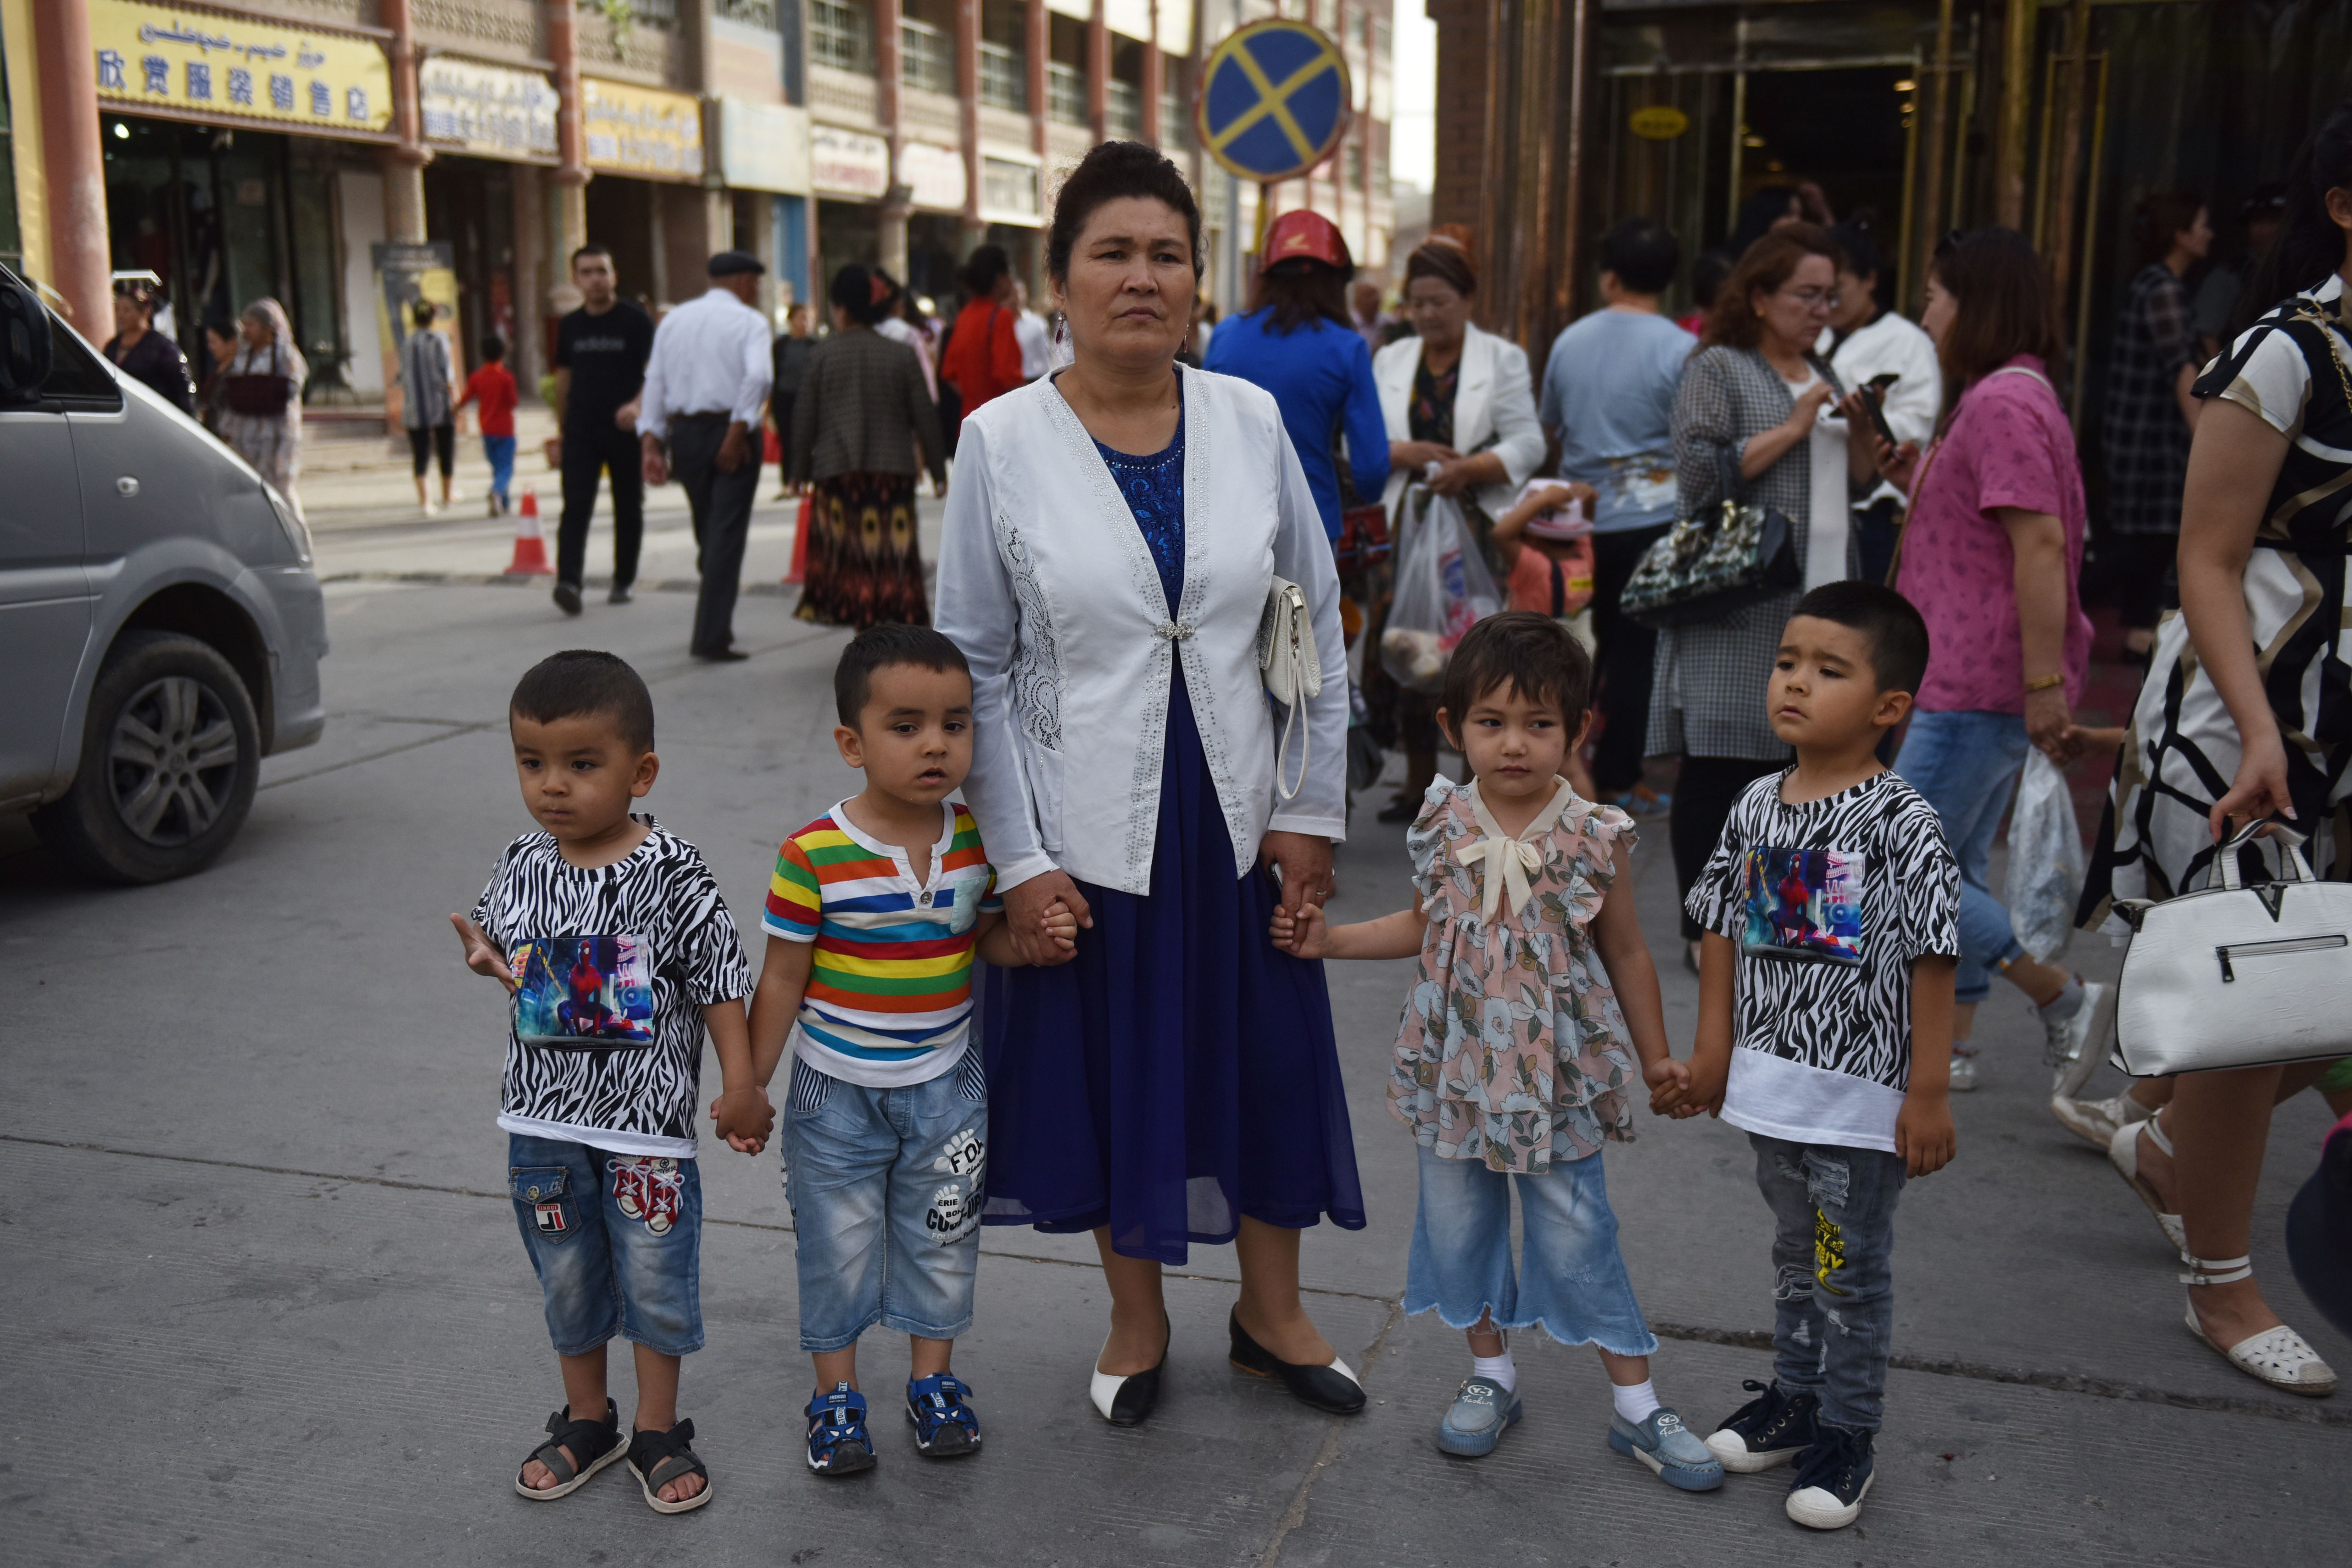 This photo taken on June 4, 2019 shows a Uighur woman waiting with children on a street in Kashgar in China's northwest Xinjiang region. (GREG BAKER/AFP via Getty Images)